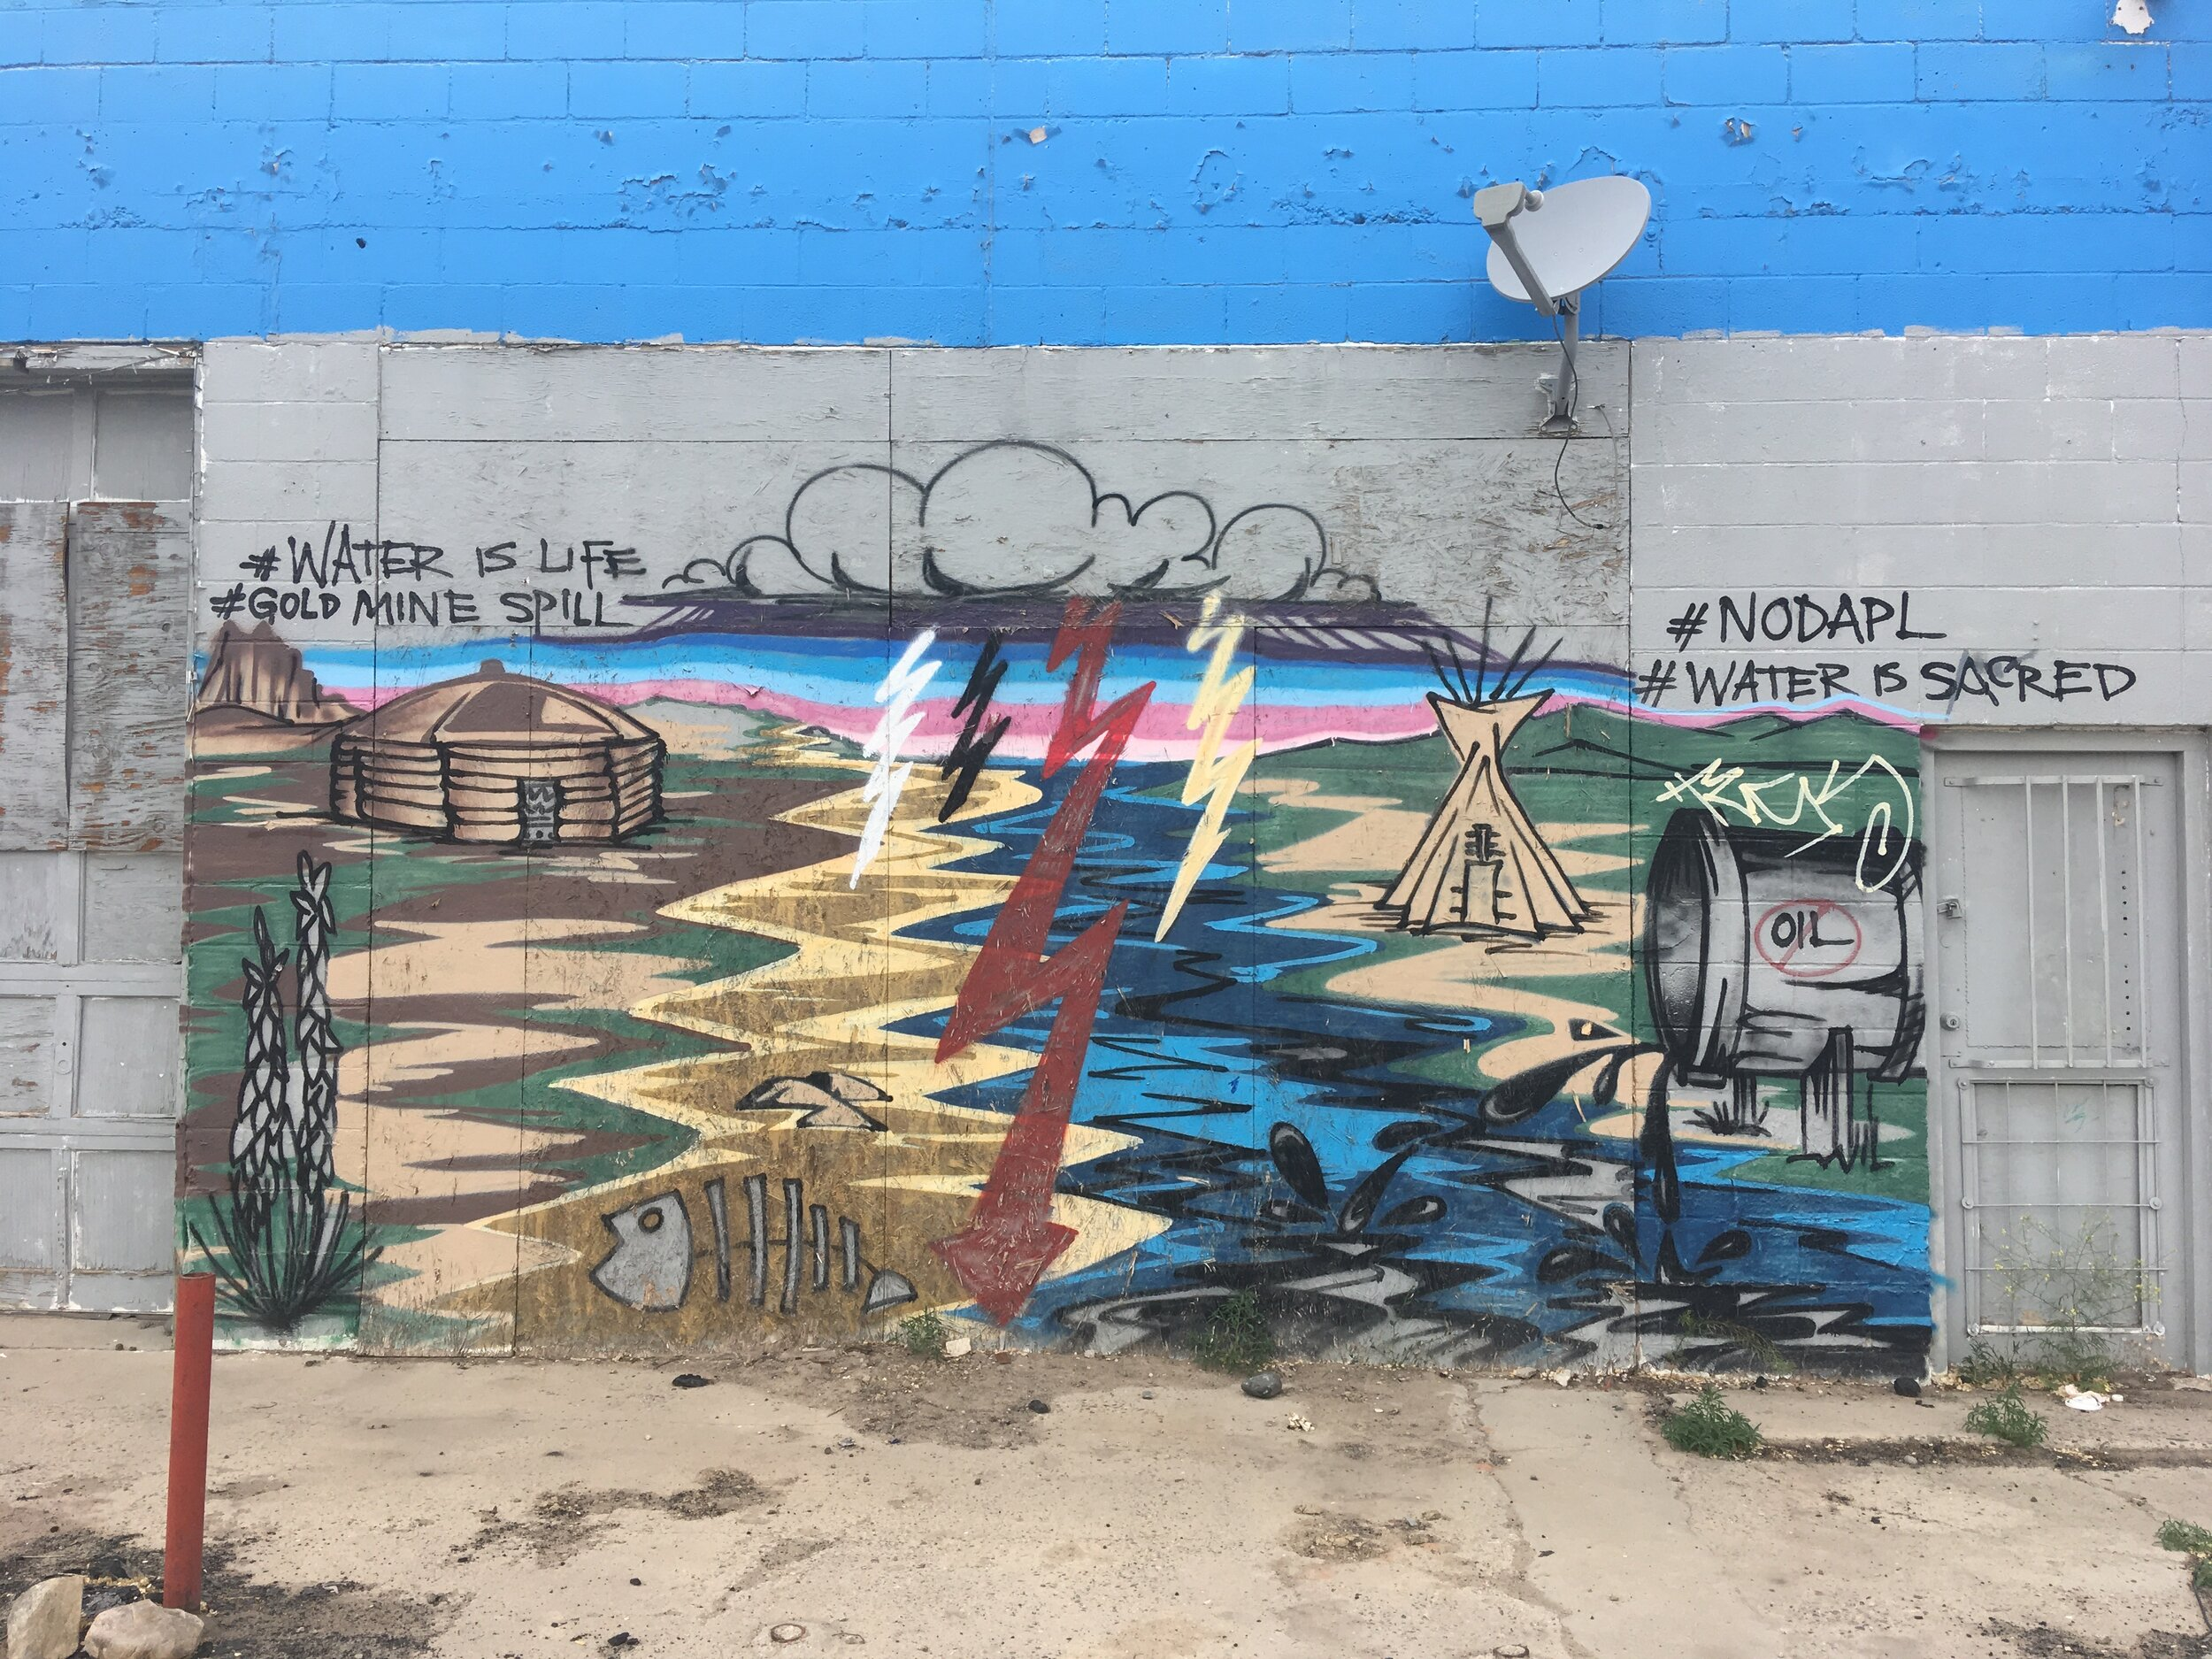 """""""#waterislife #goldminespill #noDAPL #WaterisSacred"""" Street art/Mural in Shiprock, New Mexico. Navajo Nation. Artist unknown. (If you know the artist please contact me at sarahalisabethfox@gmail.com!)"""